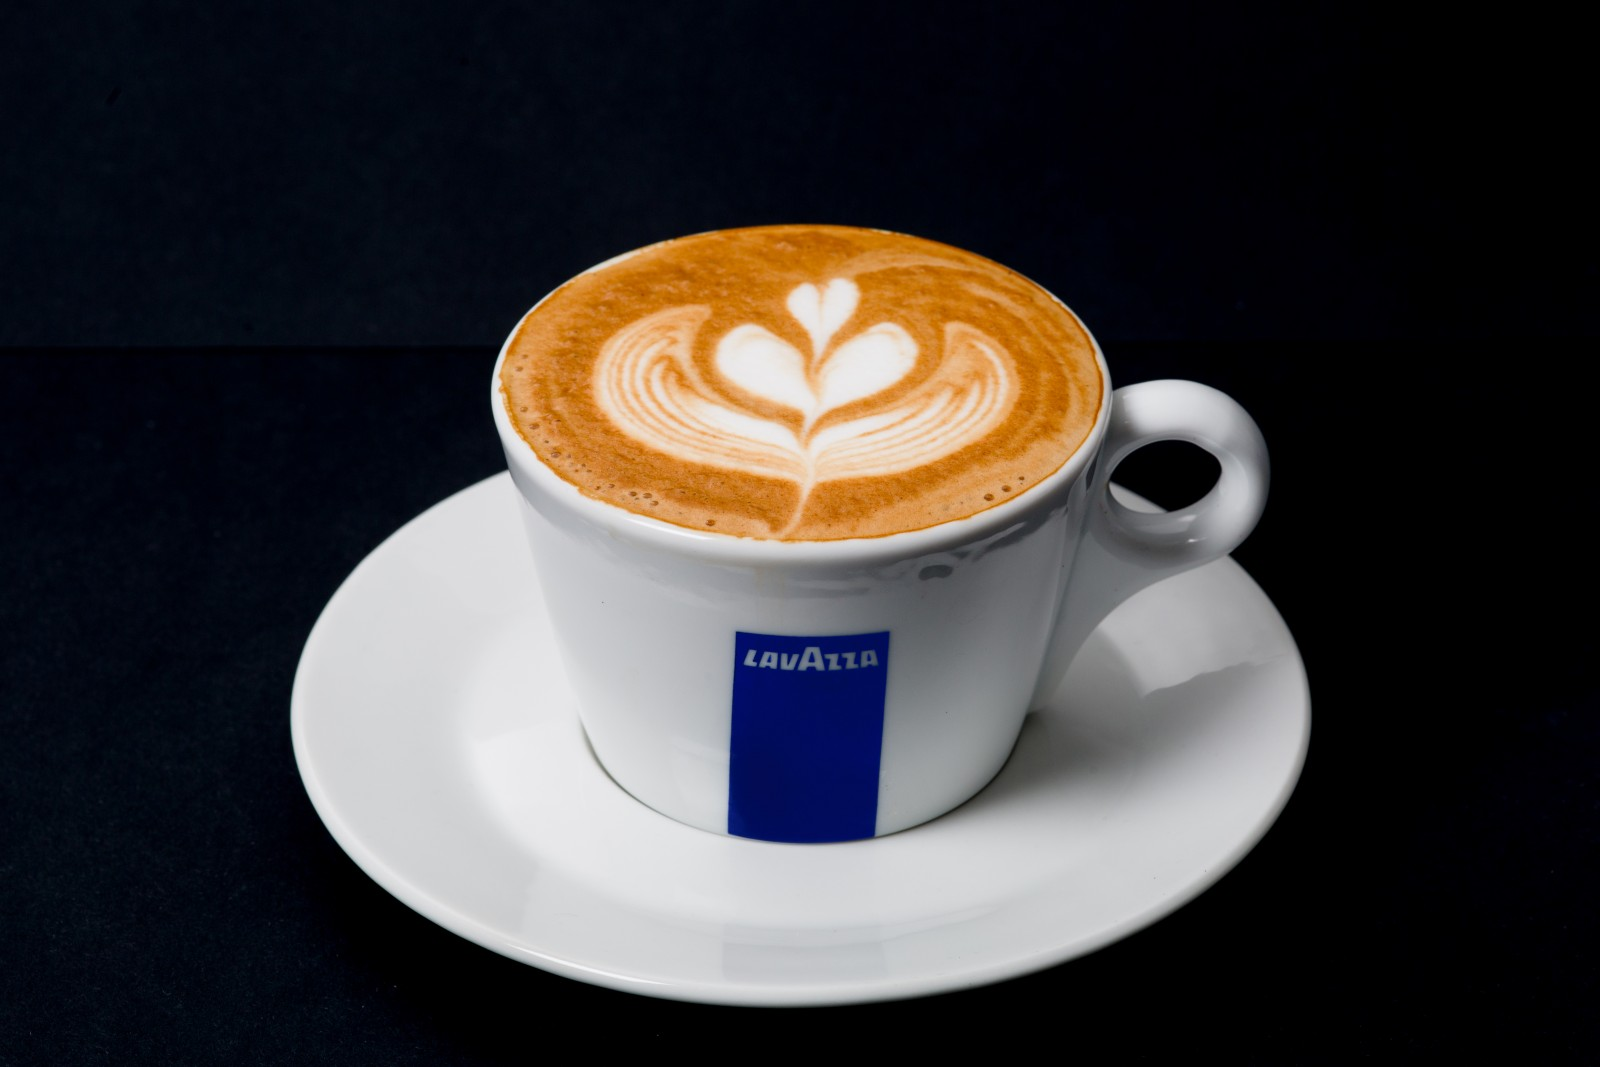 Lavazza Partnership